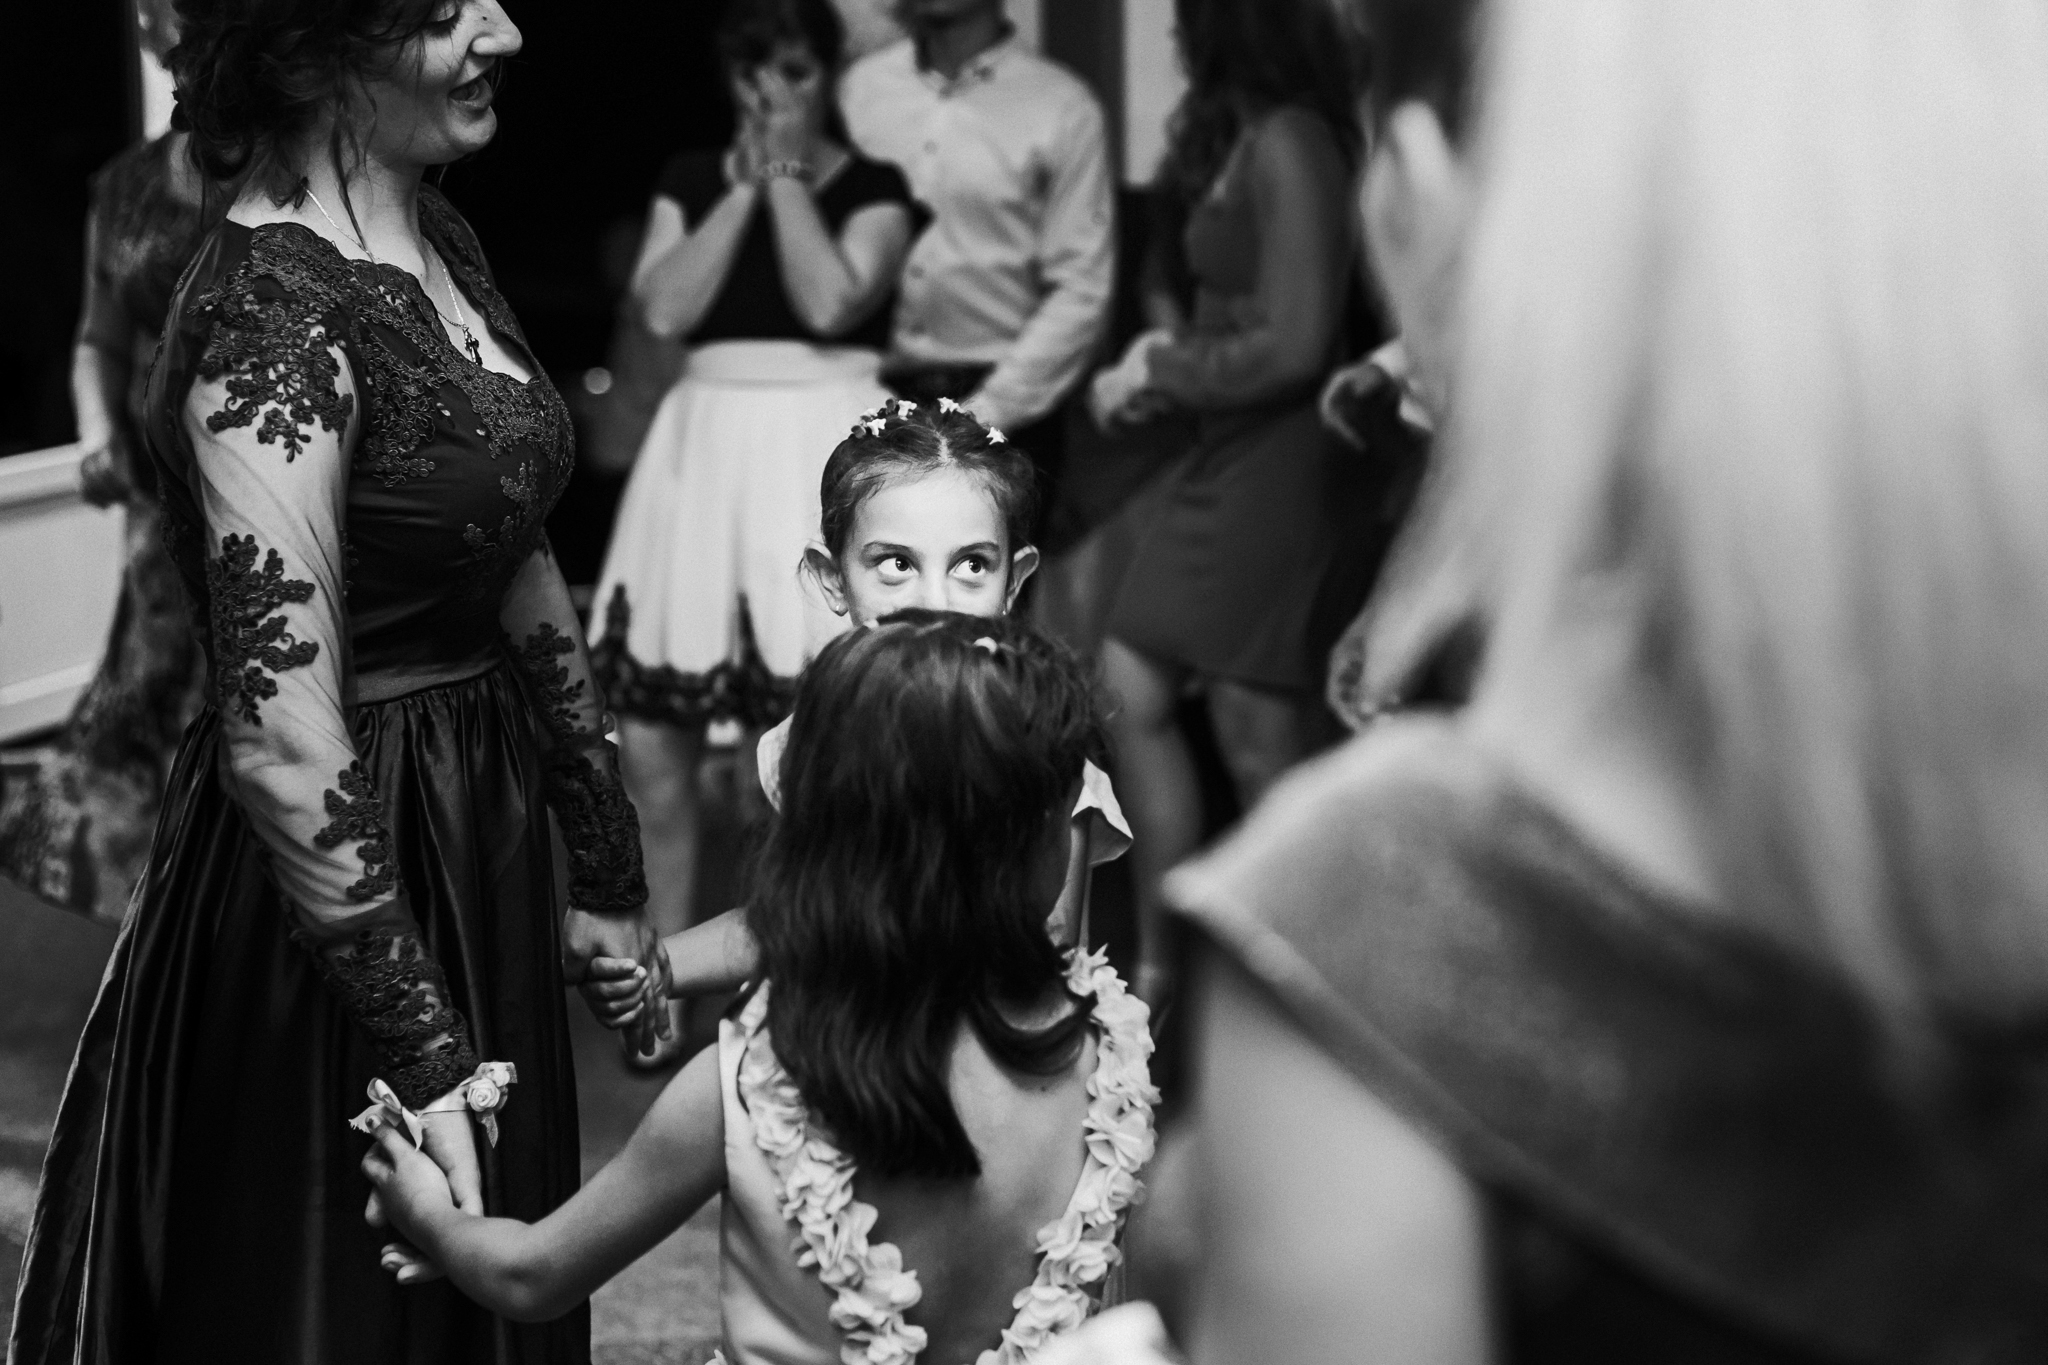 Our_wedding_0563